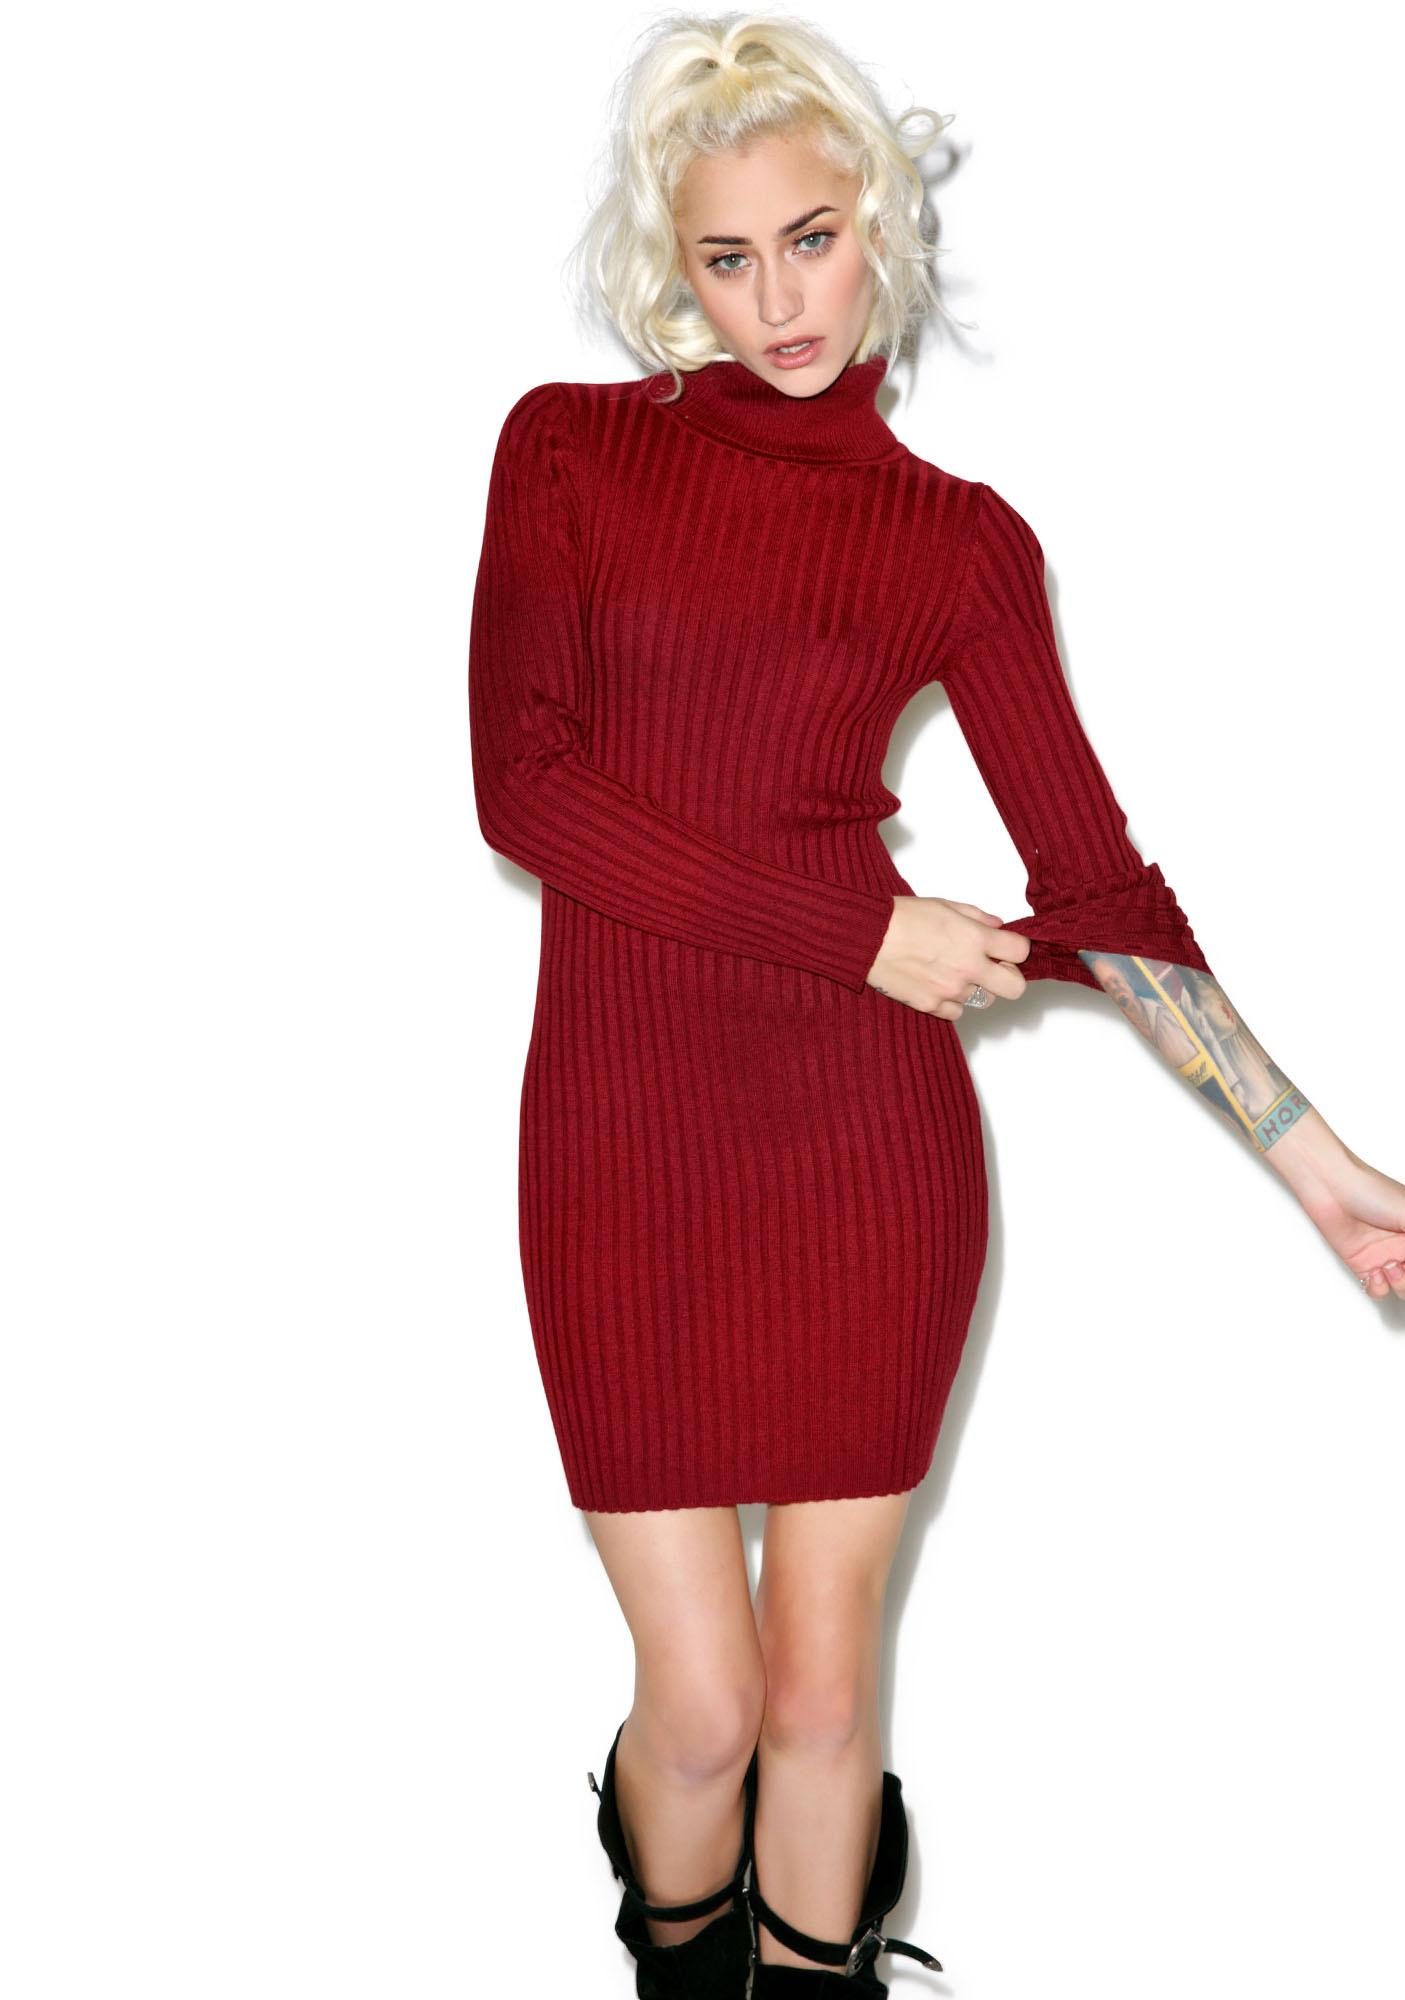 For Love & Lemons Everyday Knit Turtleneck Dress